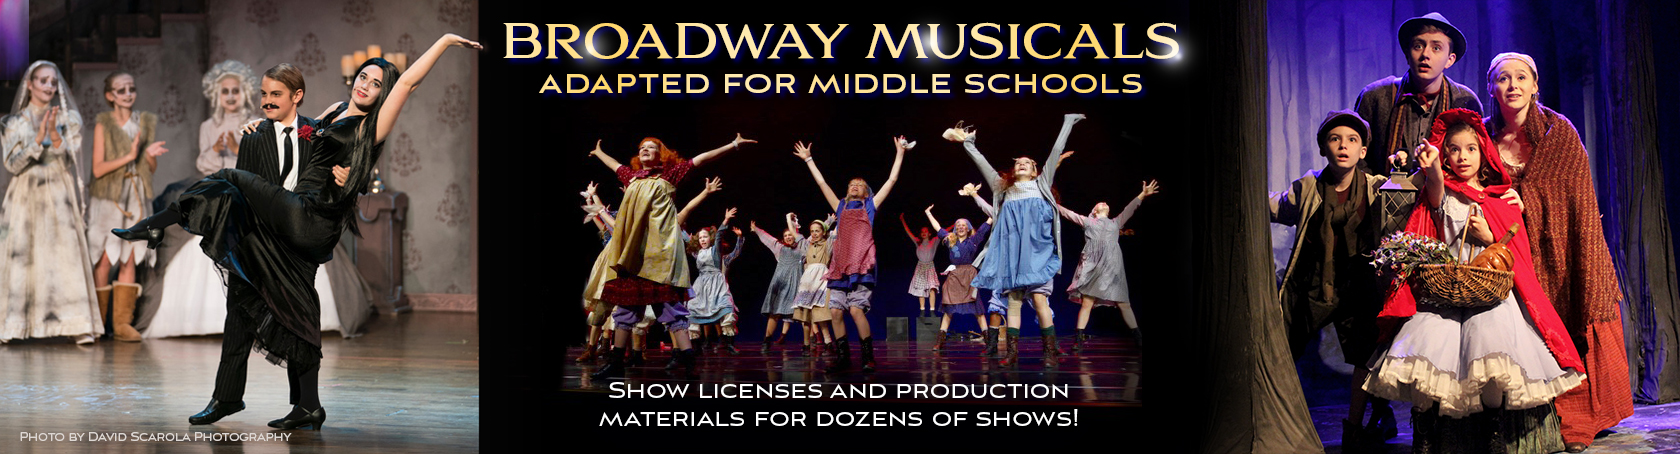 Broadway Musicals for Middle Schools